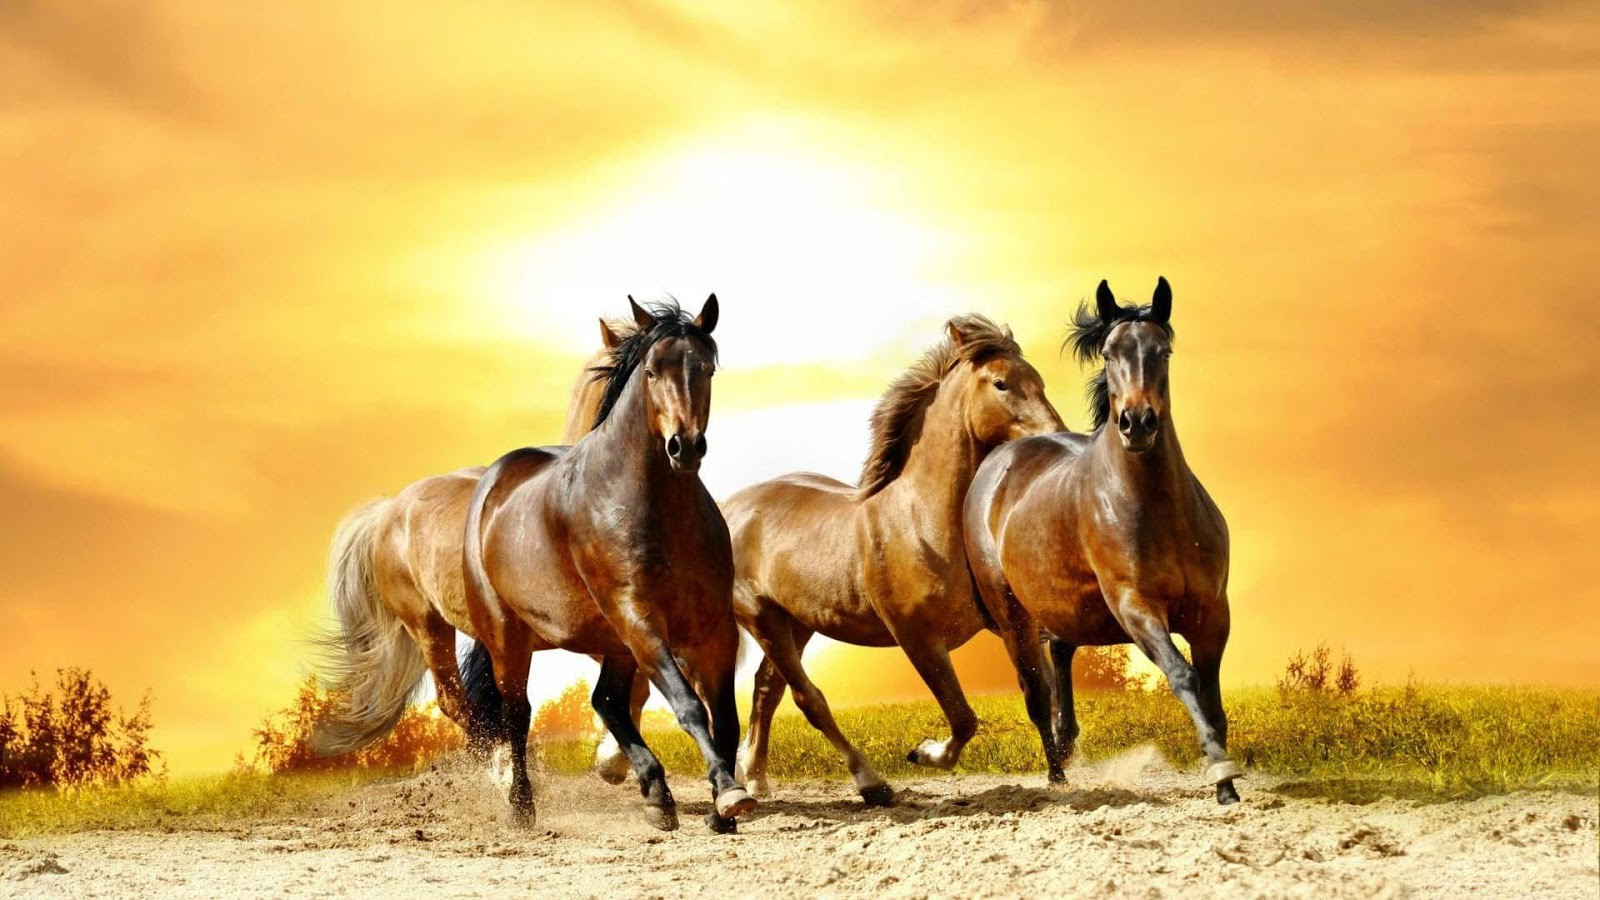 Horse Background Images Page 1